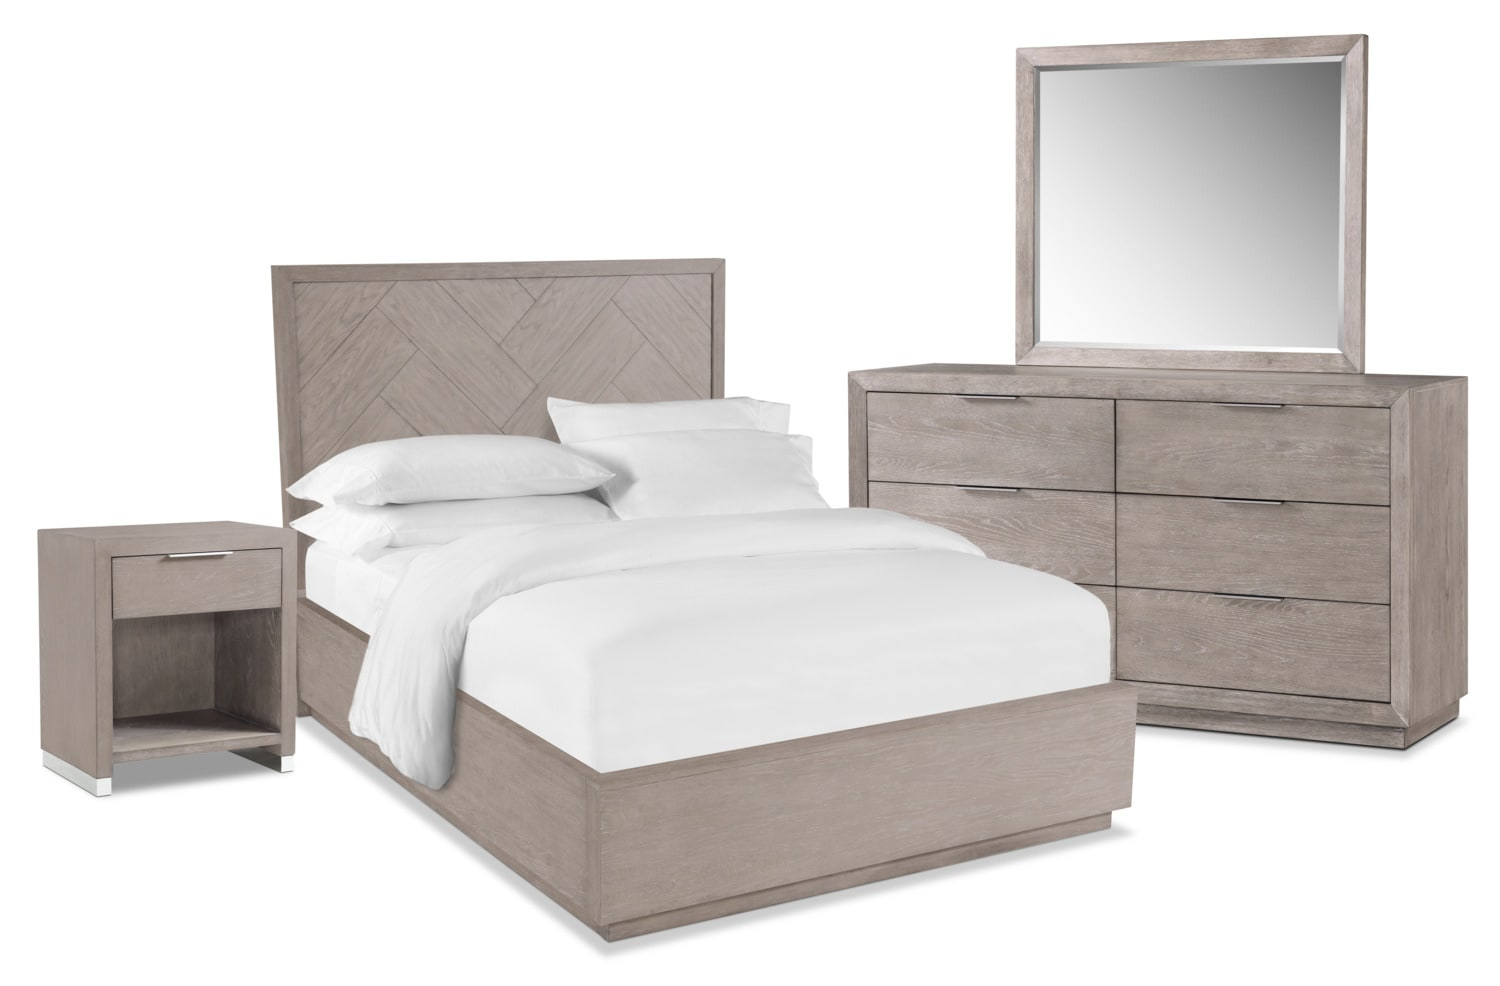 Bedroom Furniture - Zen 6-Piece Bedroom Set with Nightstand, Dresser and Mirror